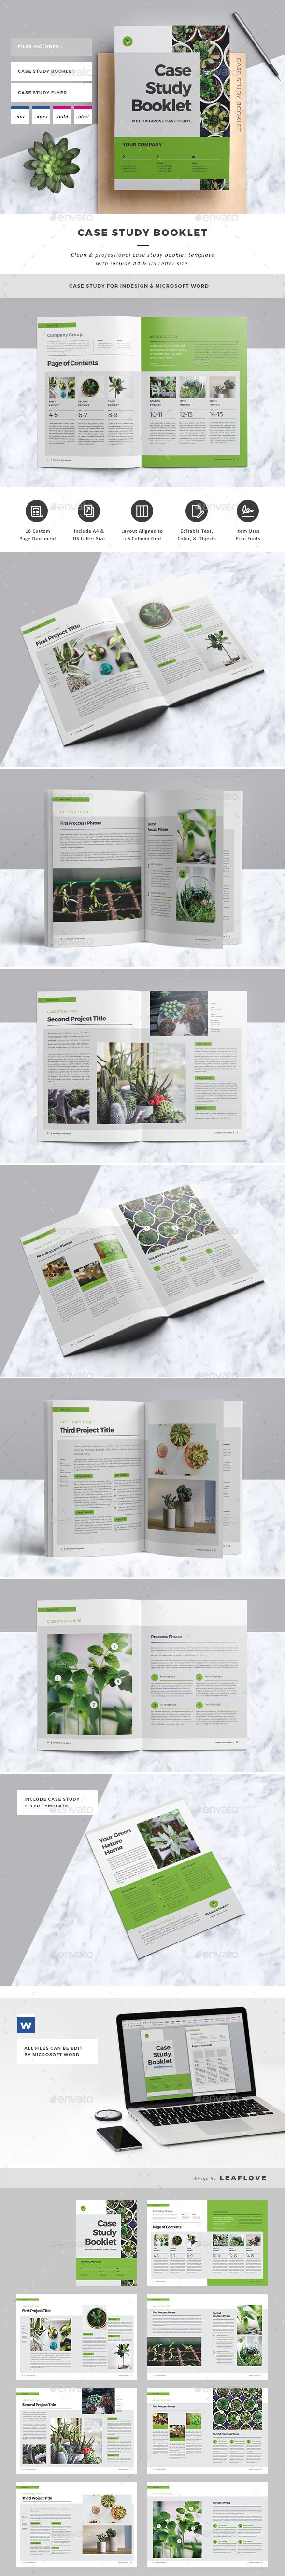 Case Study Booklet Template 	InDesign INDD. Download here: http://graphicriver.net/item/case-study-booklet/16912181?ref=ksioks